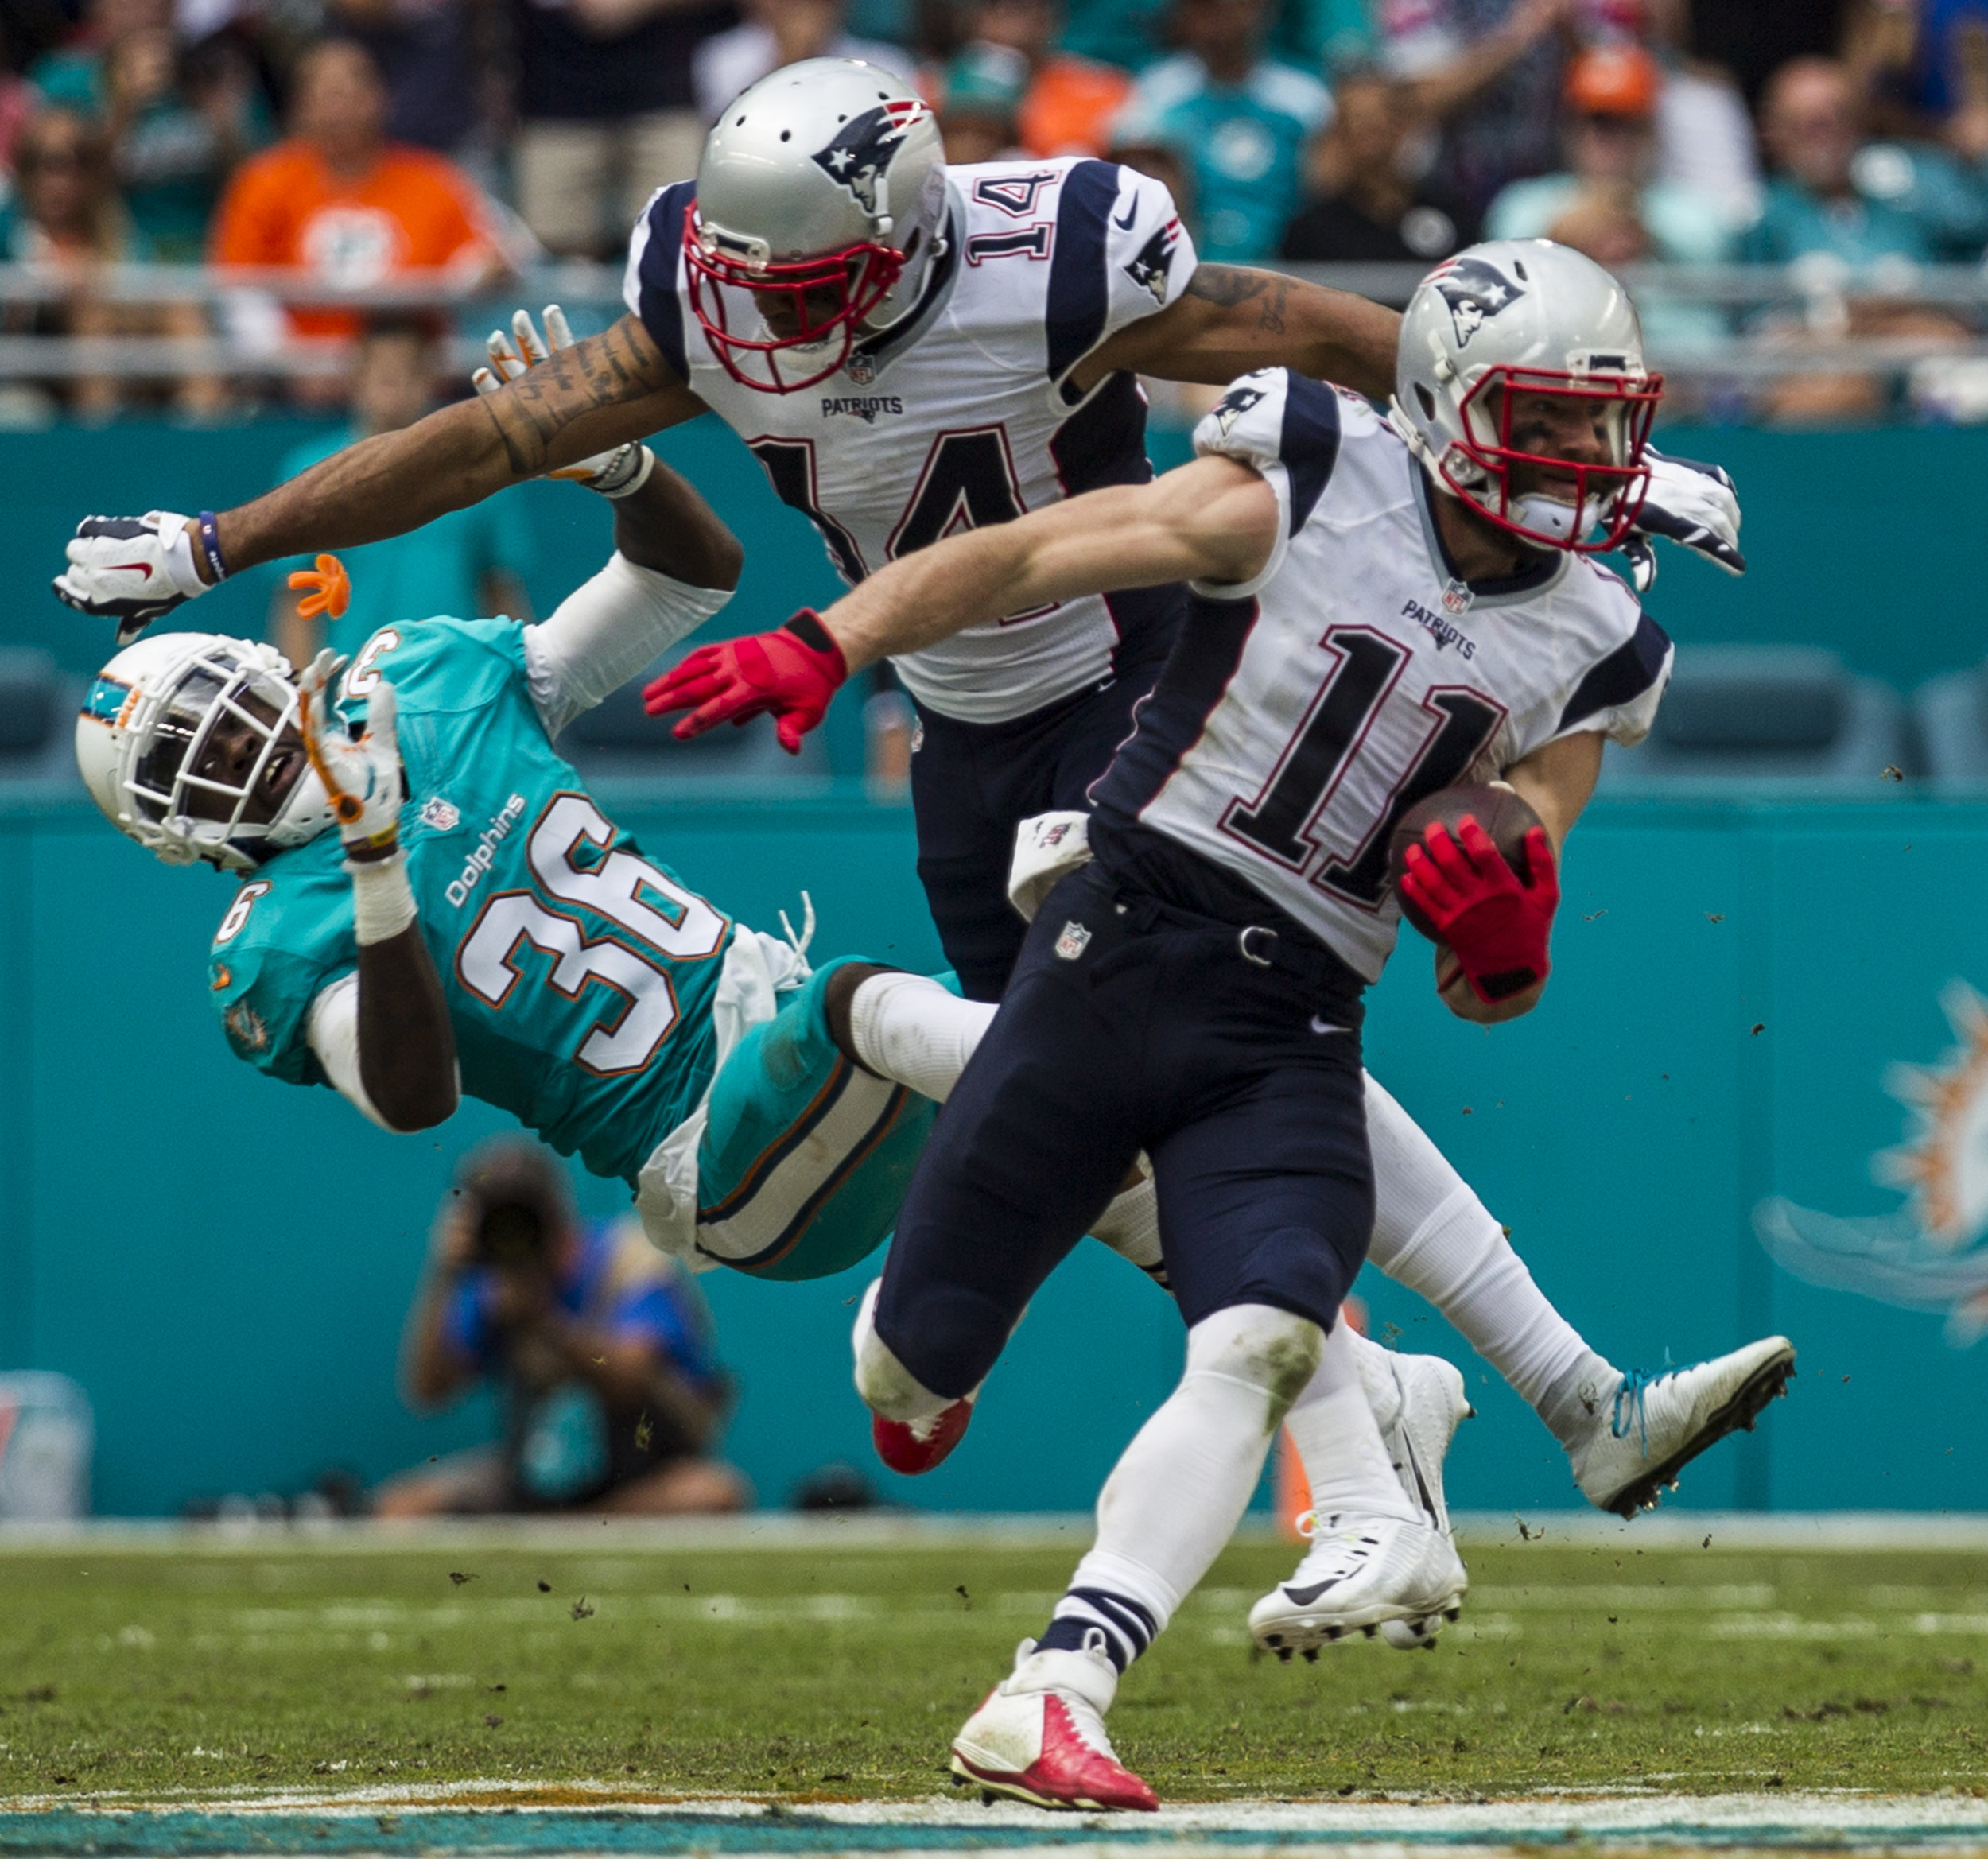 Miami Dolphins cornerback Tony Lippett (36) gets blocked by Patriots receiver Michael Floyd (14) as Julian Edelman (11) breaks free for a touchdown at Hard Rock Stadium in Miami Gardens, Florida, January 1, 2017.